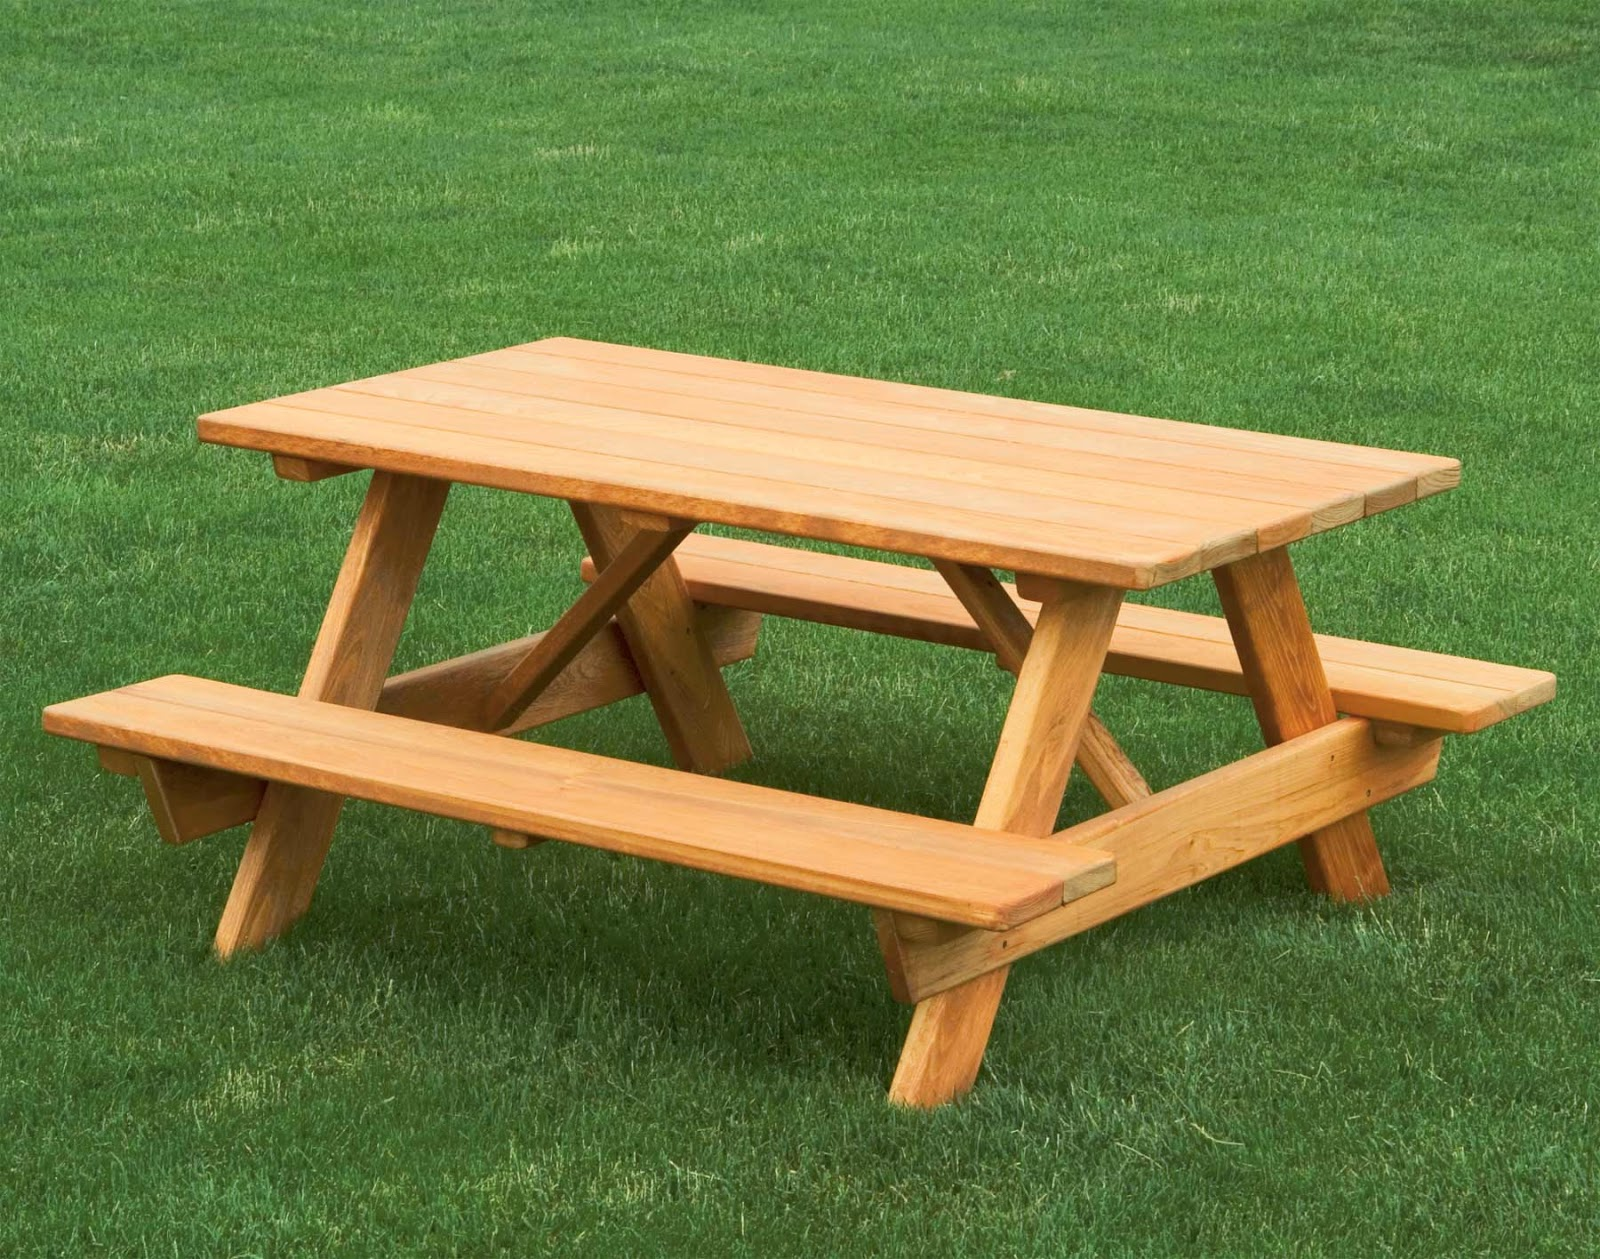 Woodworking Plans Reviewed: How To Build A Picnic Table   Step By Step Guide